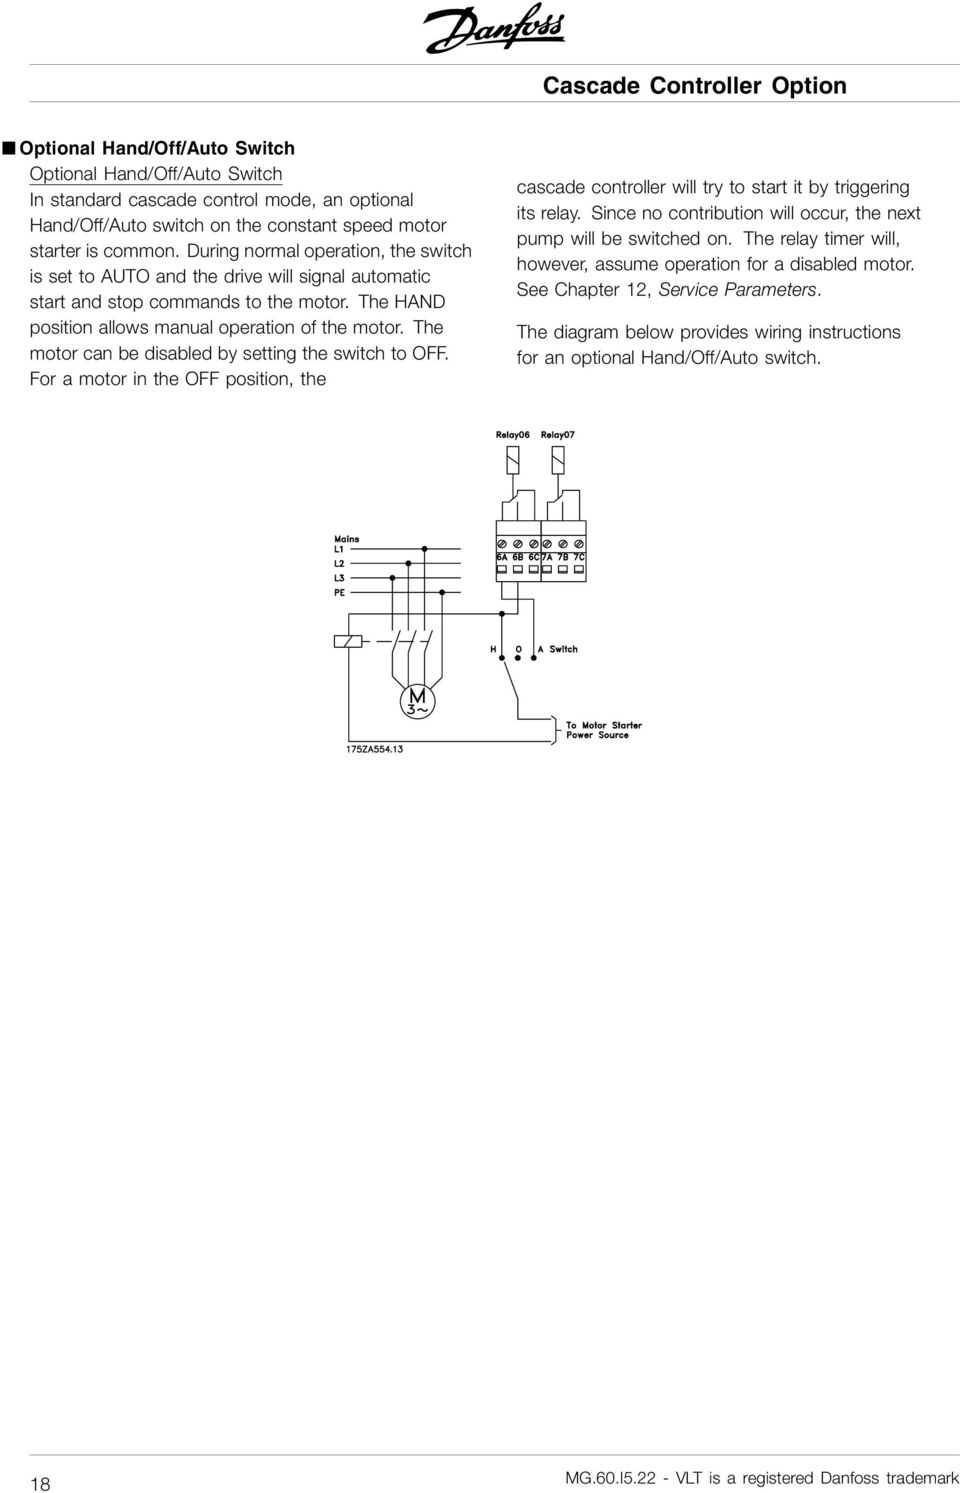 Magnificent hoa switch wiring diagram illustration wiring diagram hoa wiring diagram hoa switch vrcd400 sdu wiring diagram dehum asfbconference2016 Images